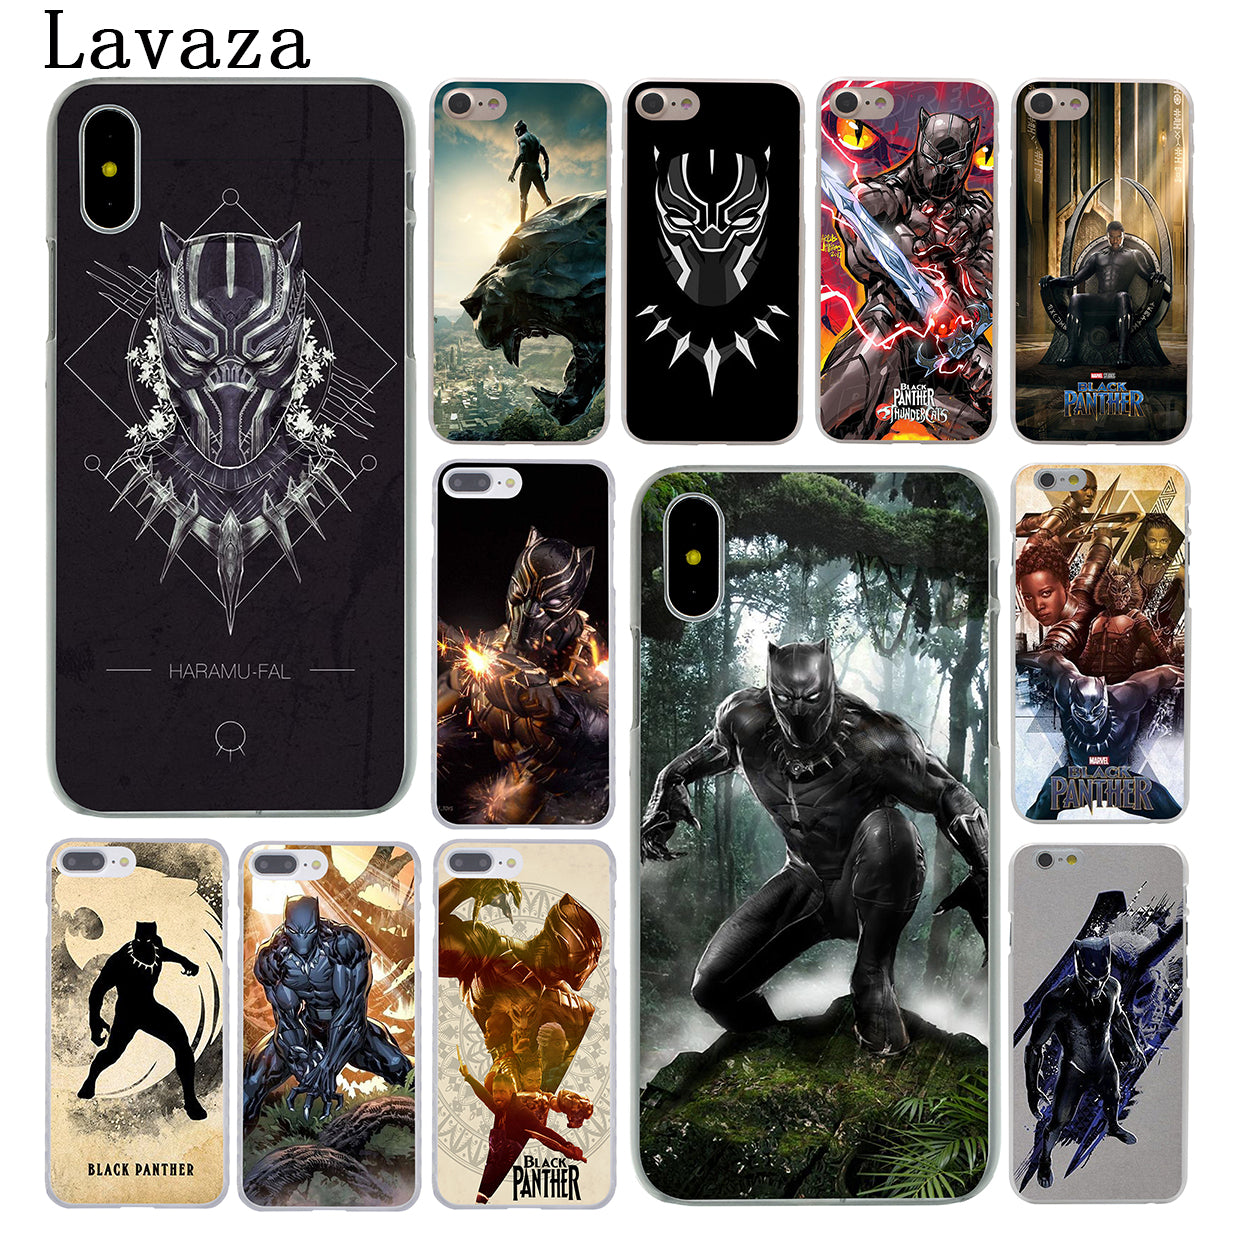 info for 504cb d0b0e Black Panther Marvel Comics Phone Case for Apple iPhone X 10 8 7 6 ...